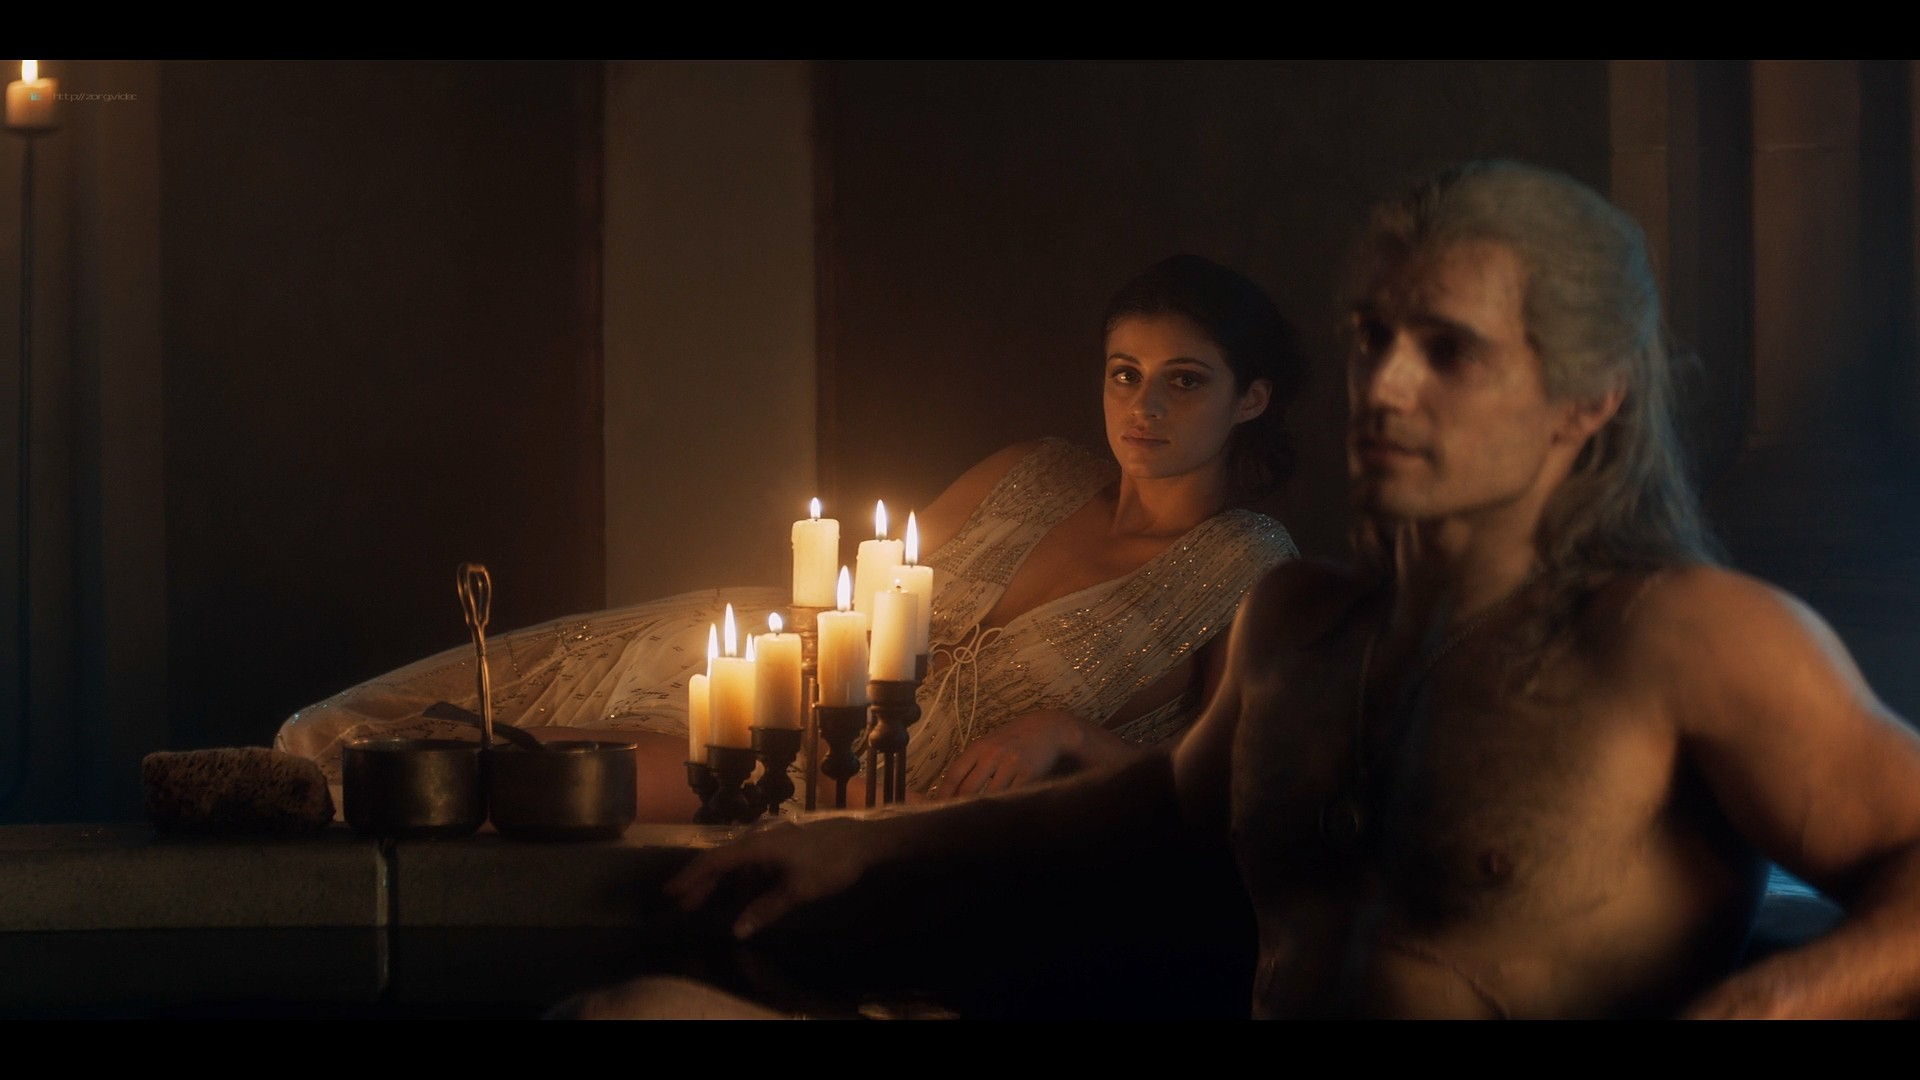 Anya Chalotra nude others nude too - The Witcher (2019) s1e5-6 HD 1080p WEB (15)